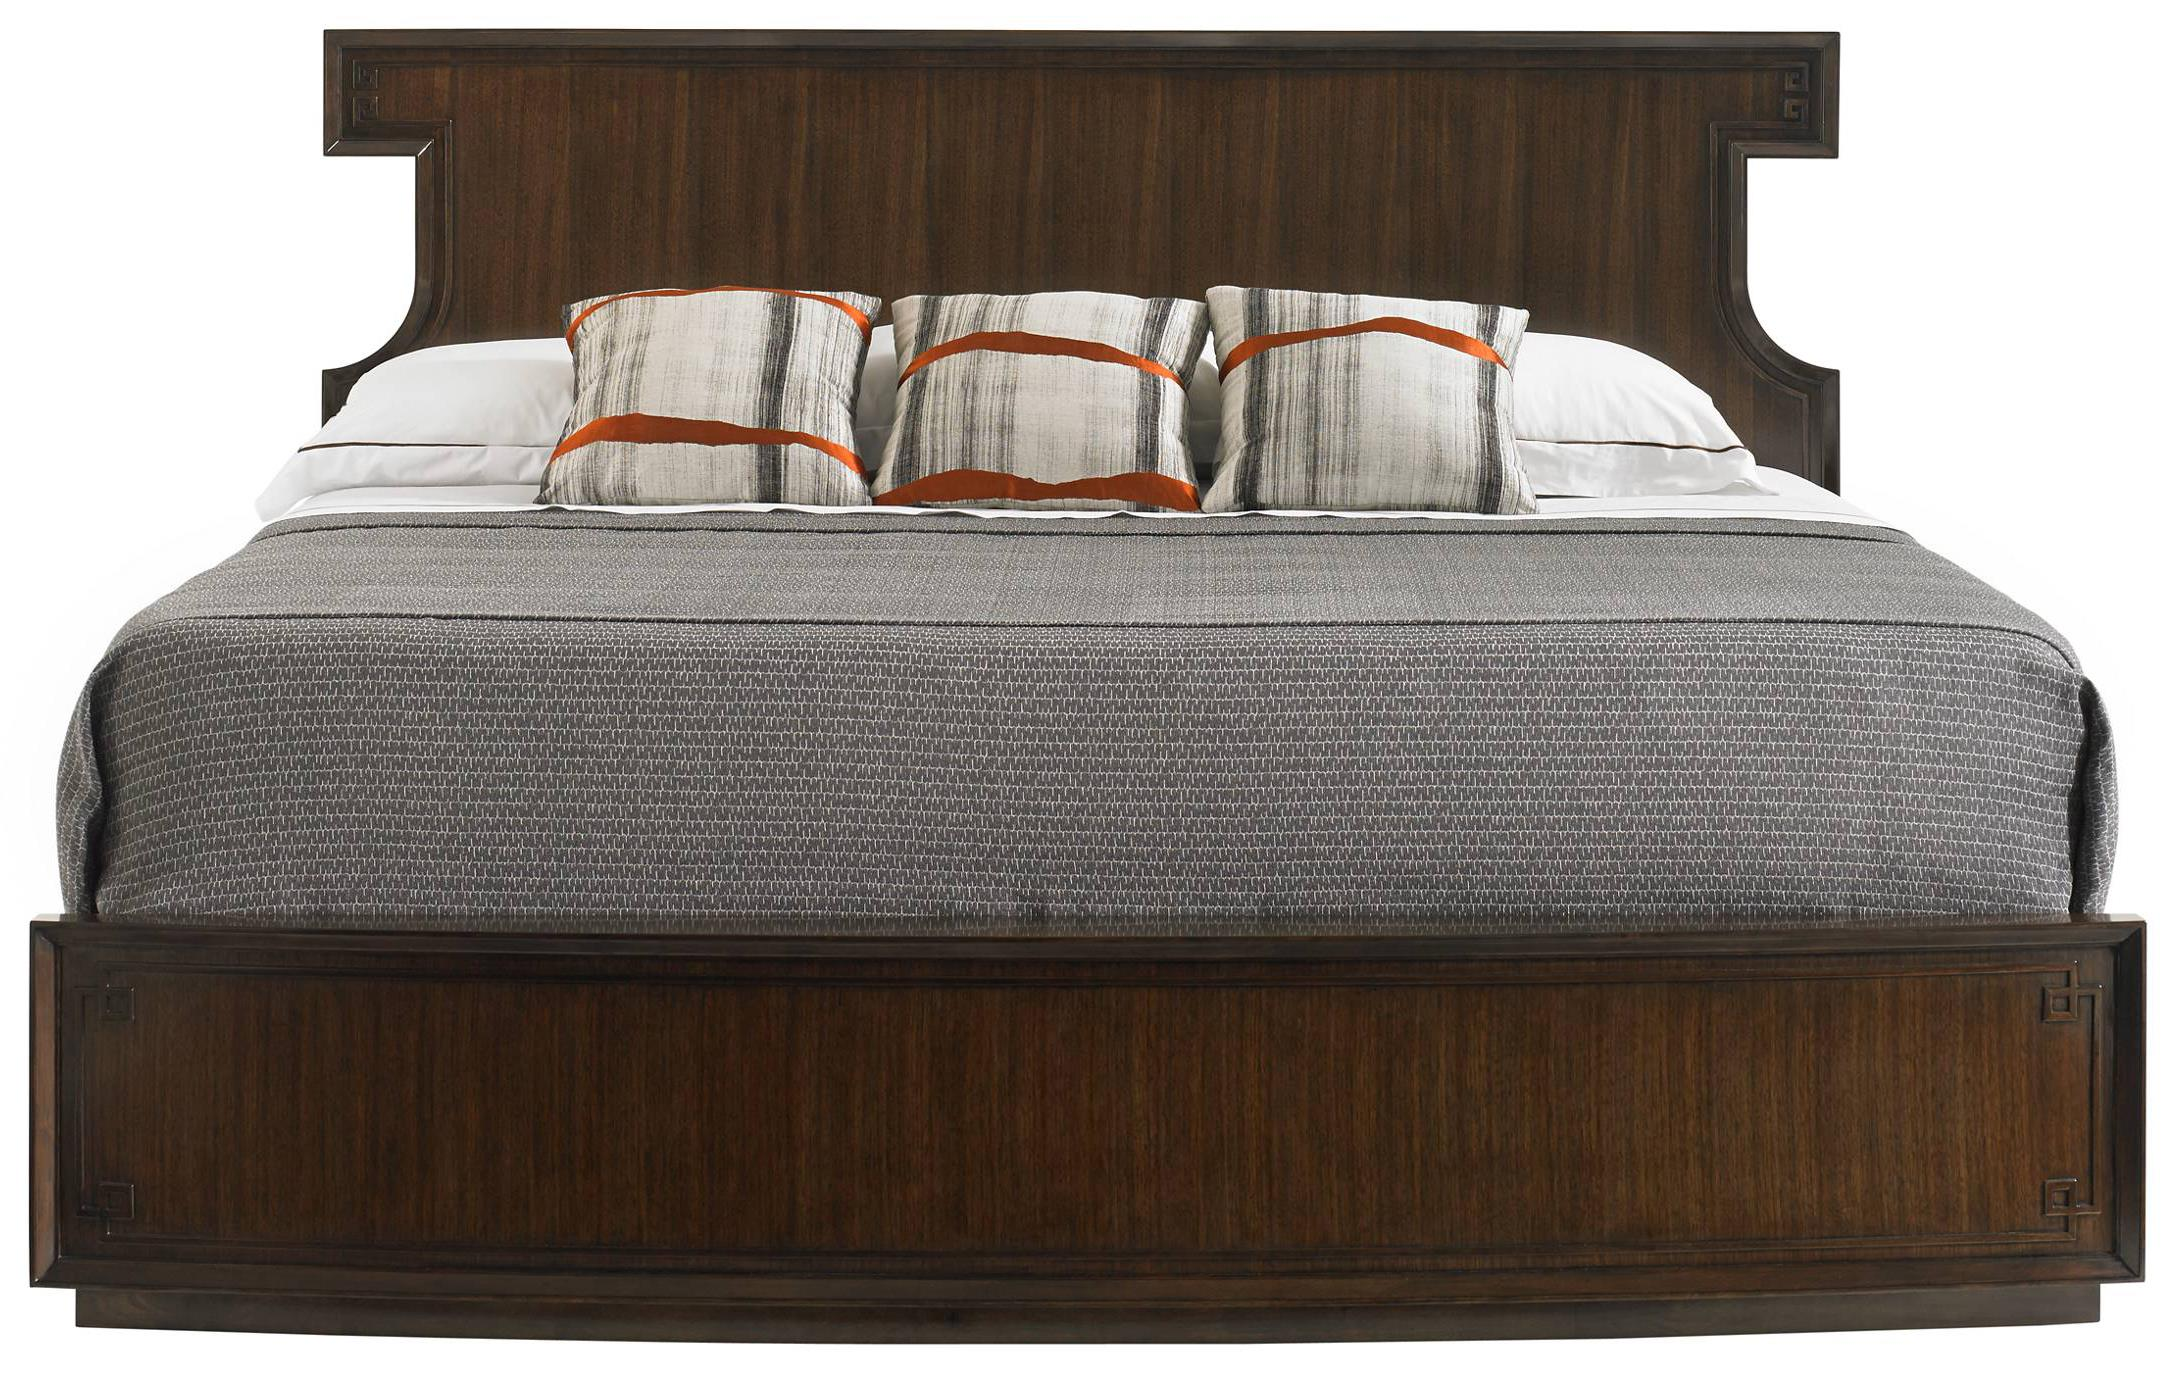 Stanley Furniture Crestaire King Southridge Bed - Item Number: 436-13-45